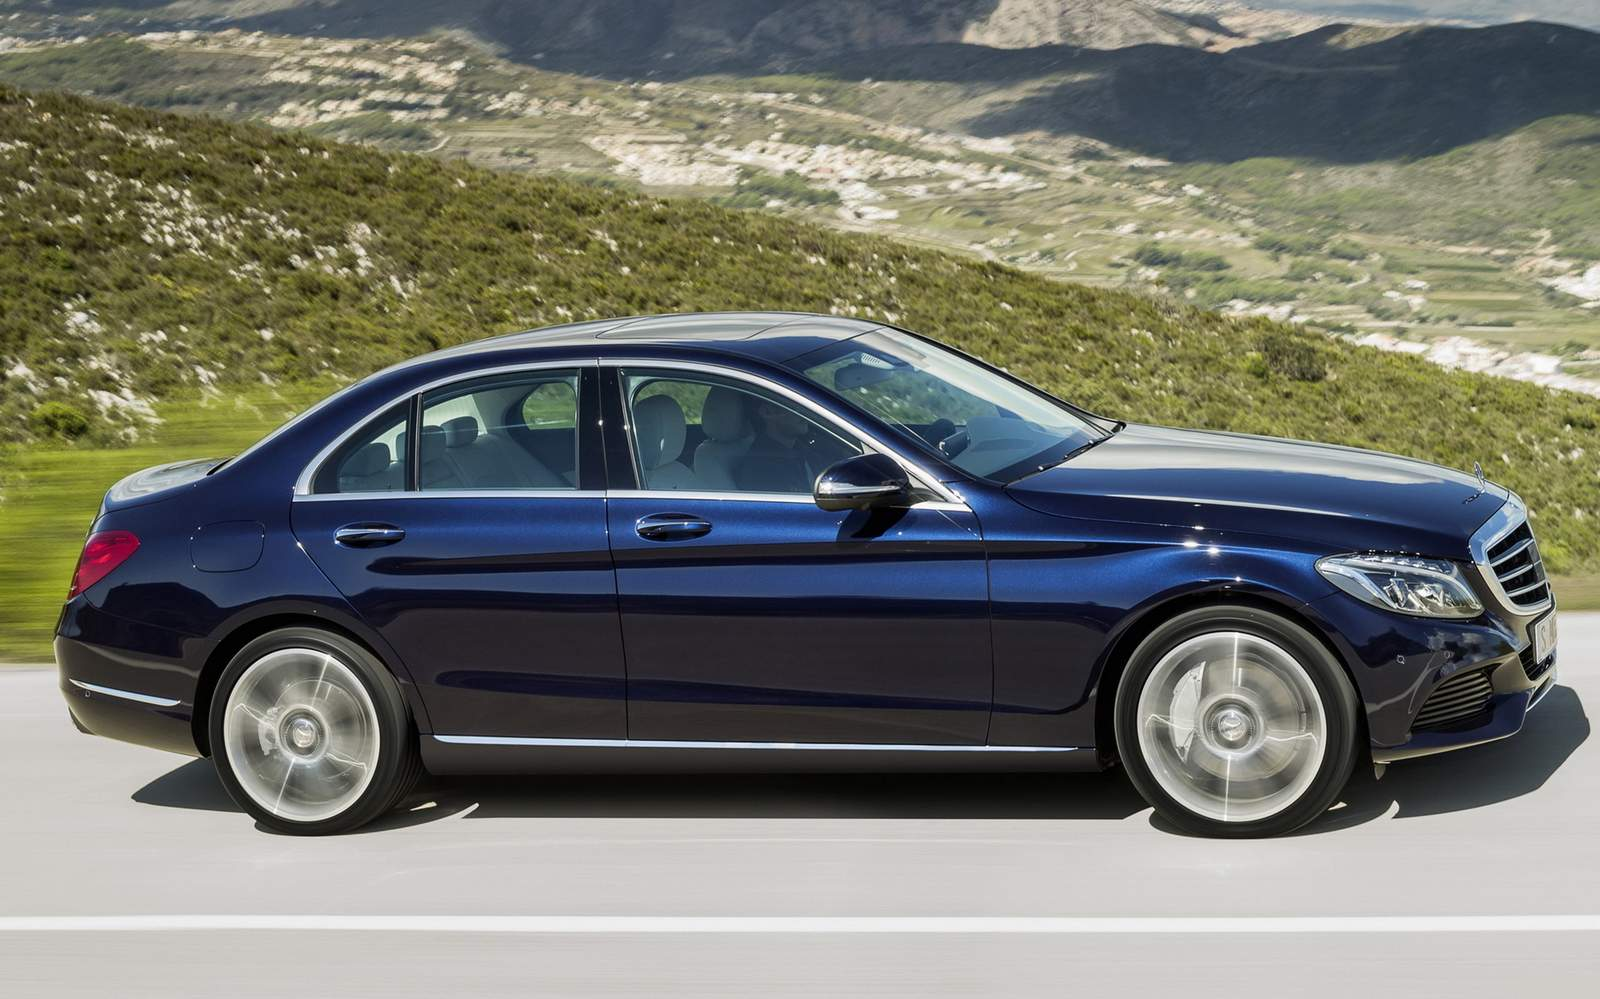 mercedes benz c300 chega ao brasil pre o r 250 mil car. Cars Review. Best American Auto & Cars Review